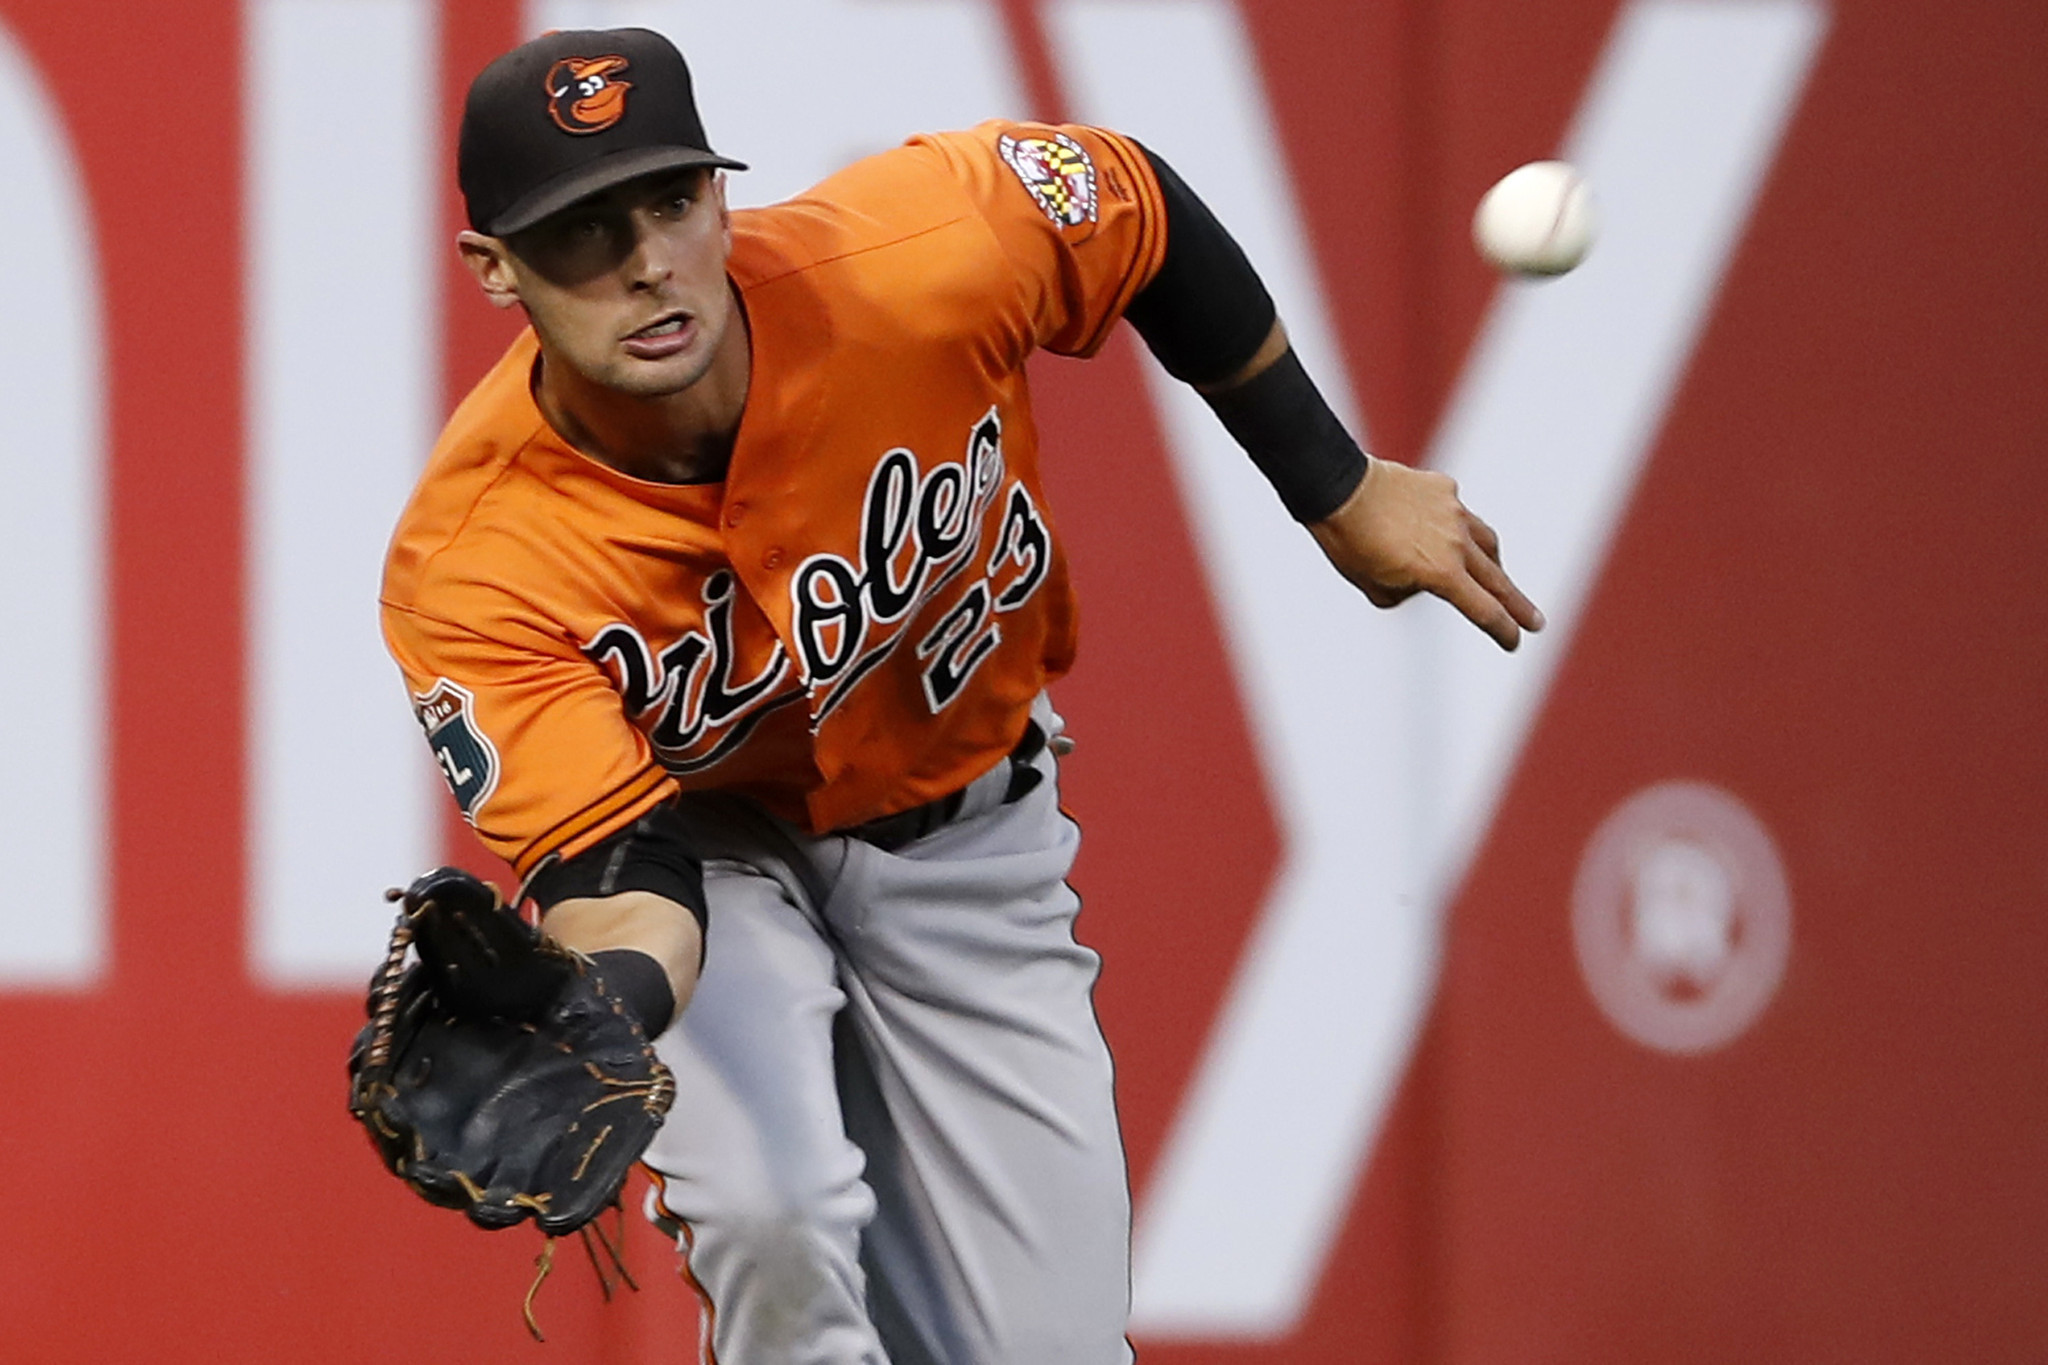 Bal-orioles-notes-rickard-won-t-make-dl-date-bench-depth-will-help-in-nl-park-and-the-latest-on-alec-ash-20170418